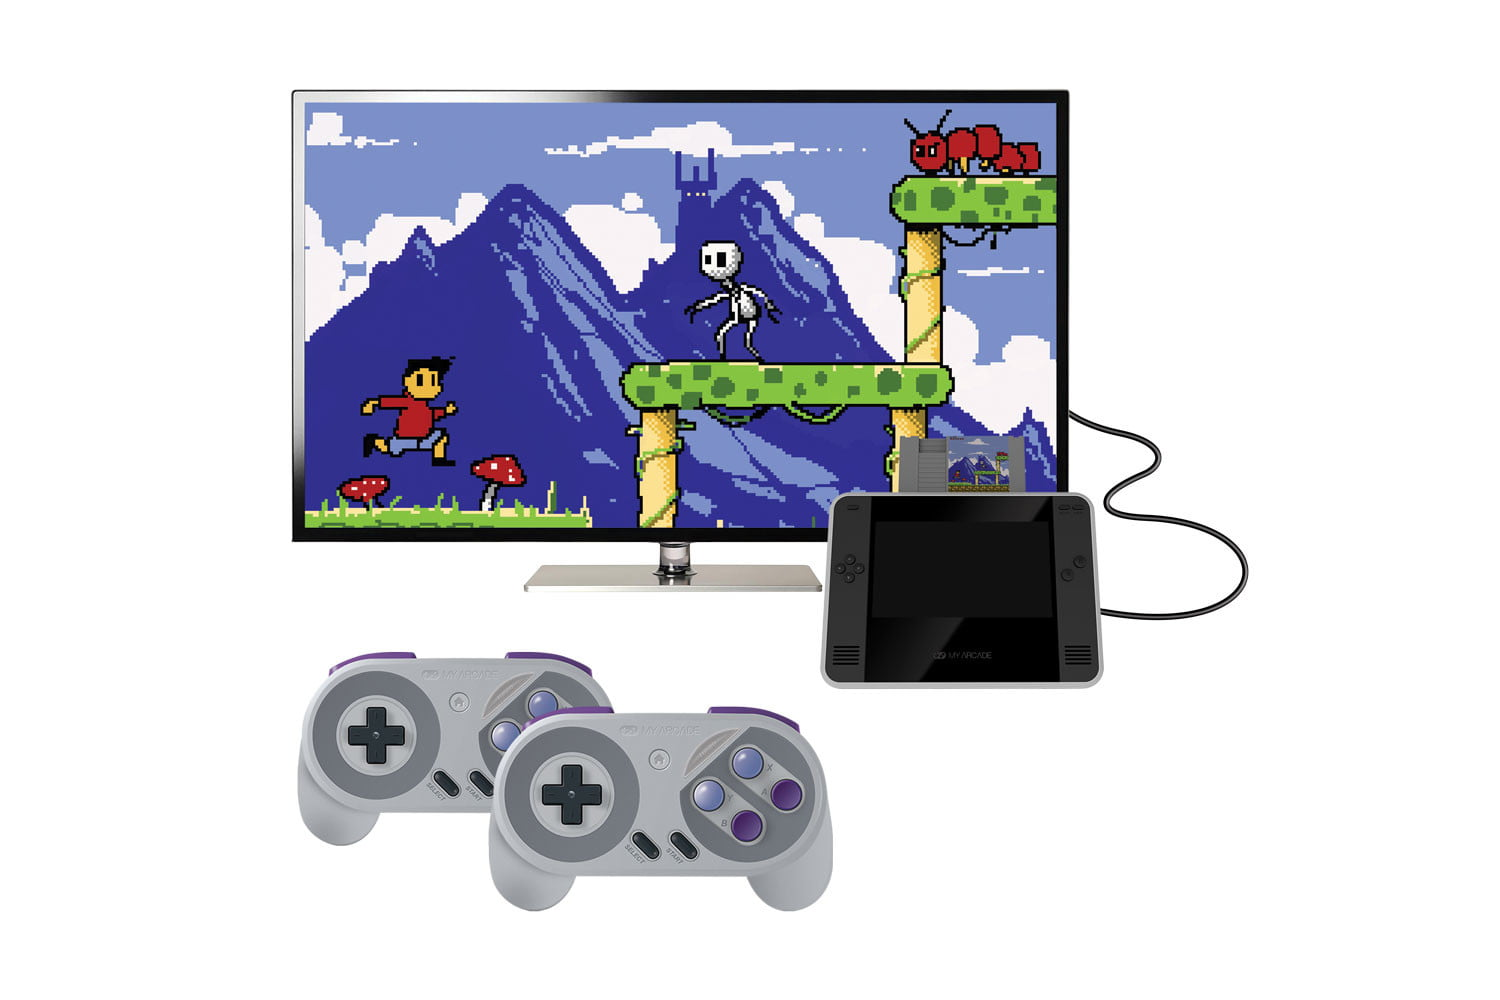 NES and Famicom join forces on new mini console, mini arcade cabinets tag along